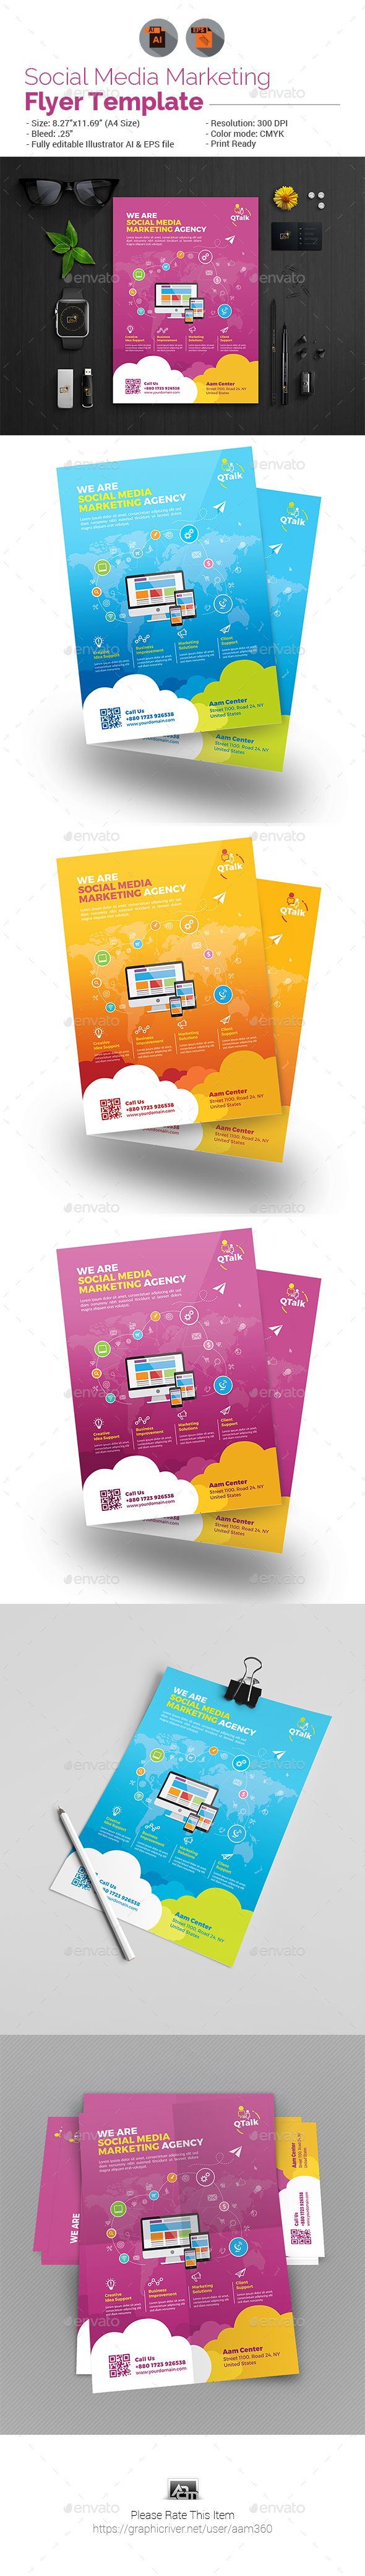 Social Media Marketing Flyer — Vector EPS #network #service • Available here → https://graphicriver.net/item/social-media-marketing-flyer/19569250?ref=pxcr